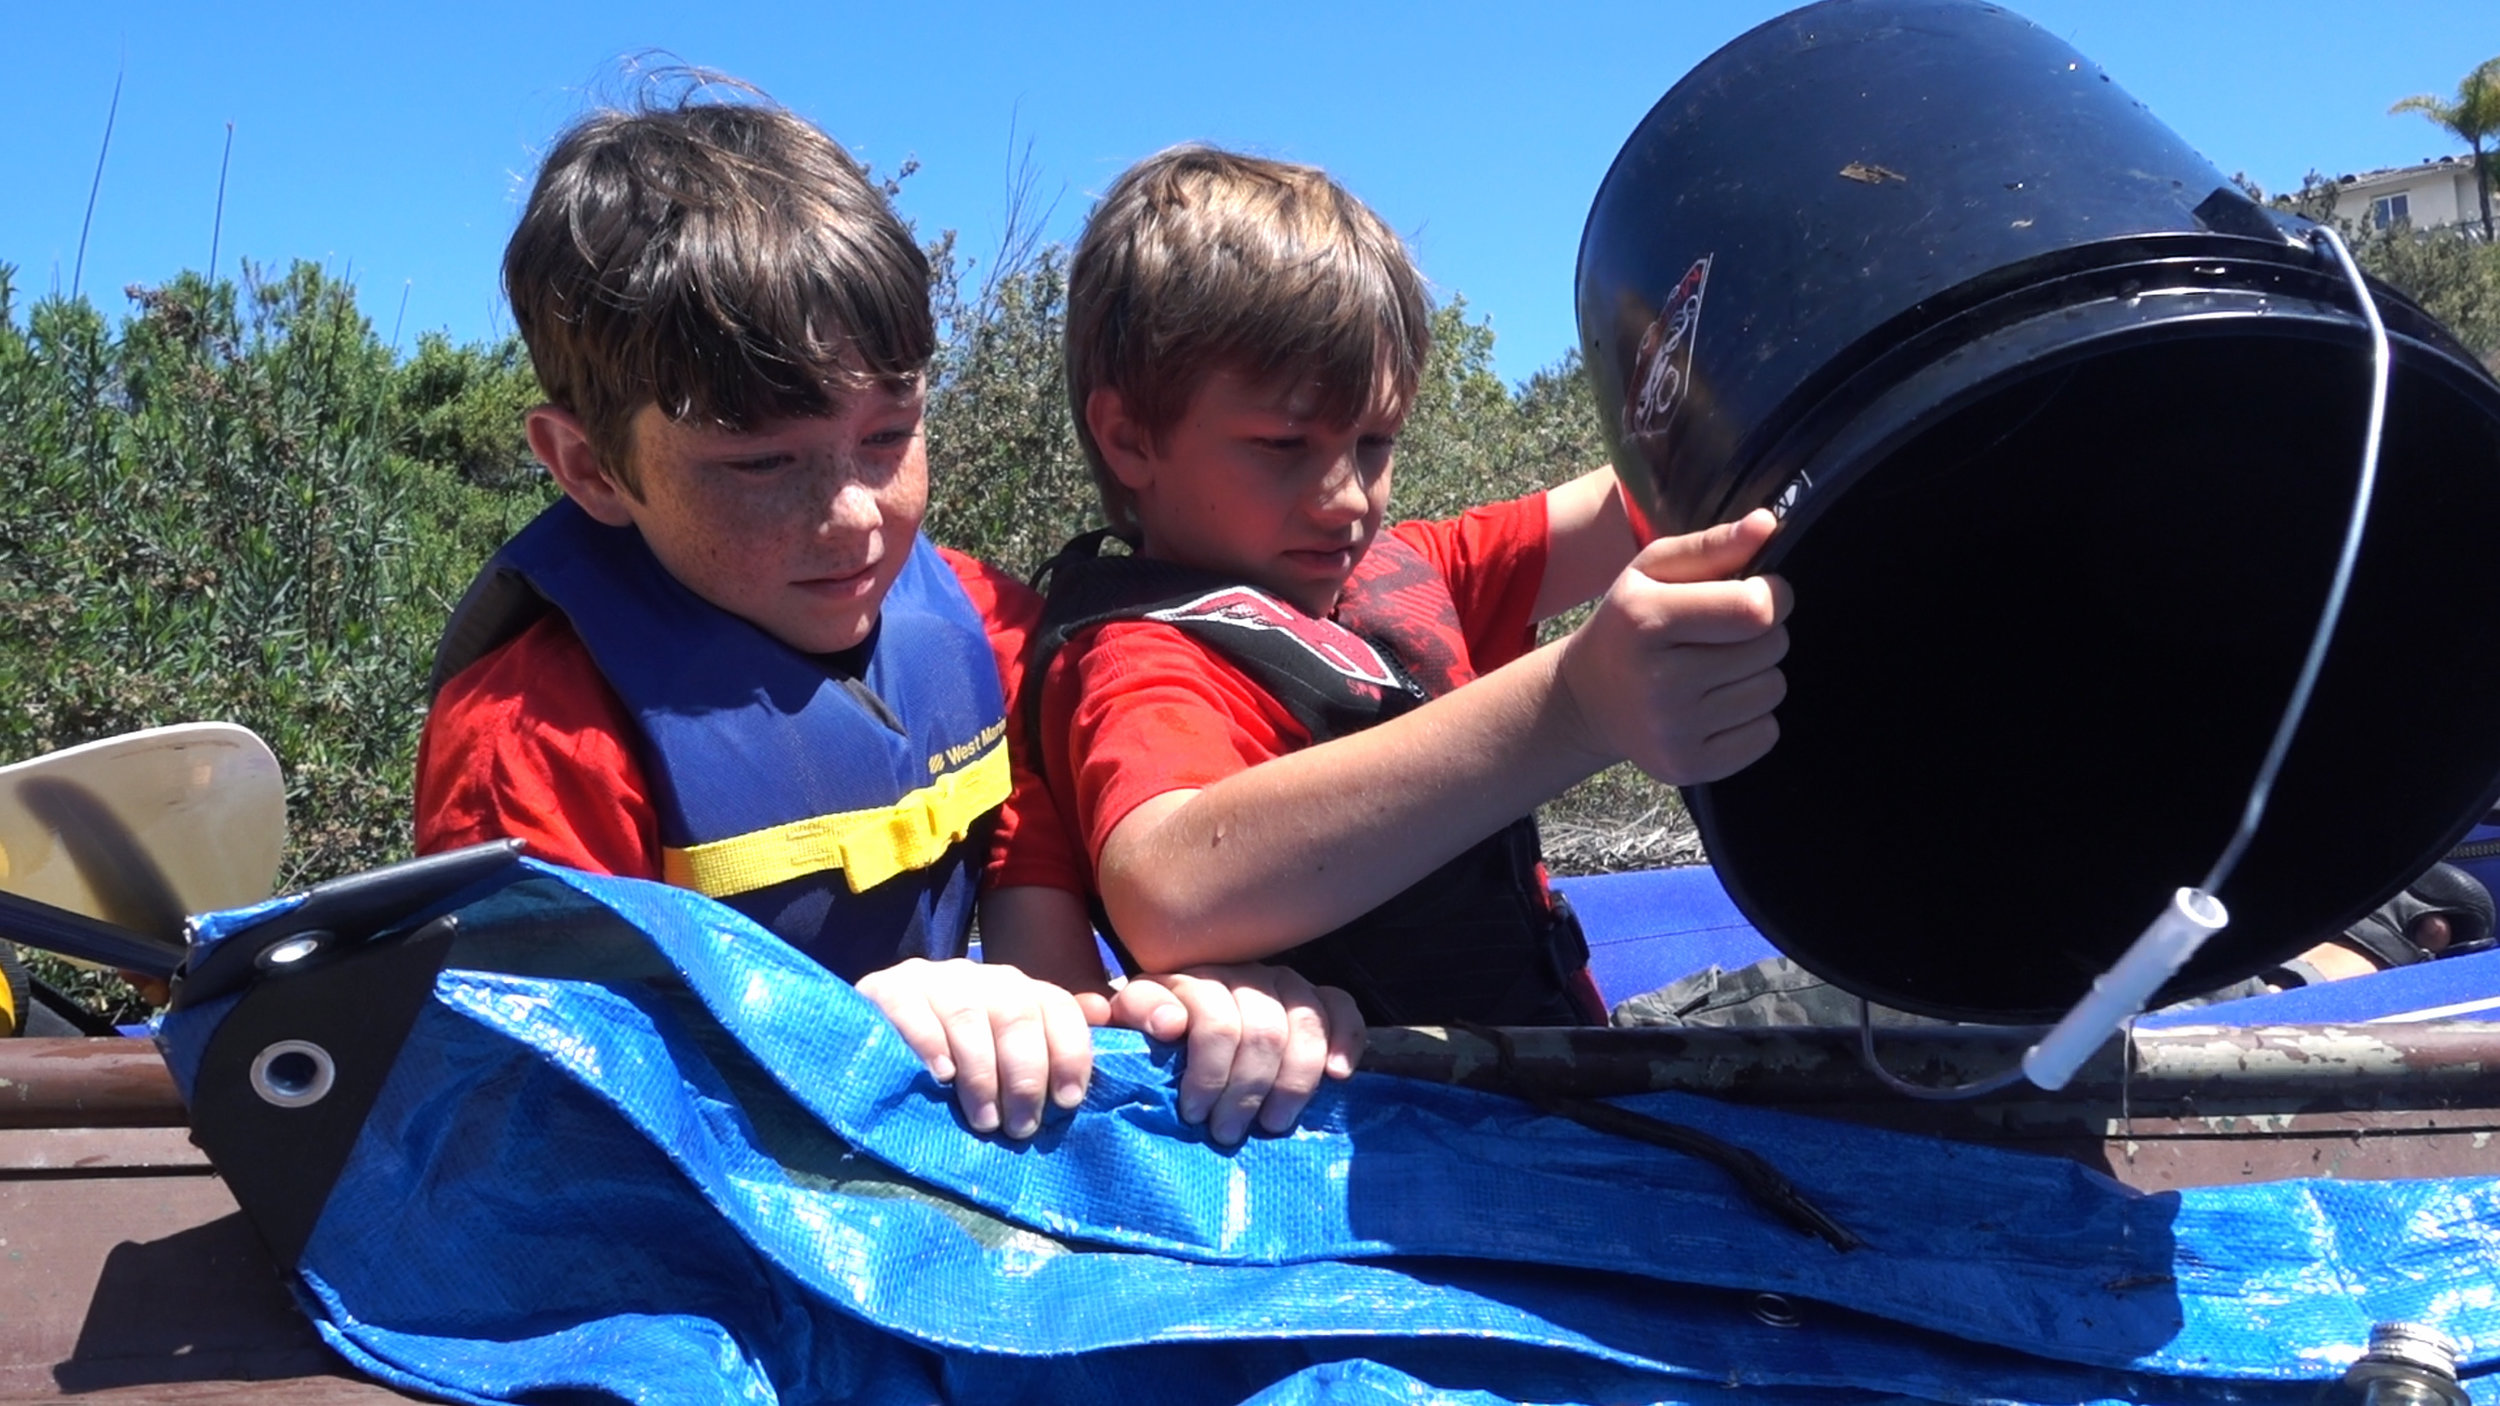 Cleanup Pond - Dumping trash bucket with Microactivist friend Jonah Wright.jpg